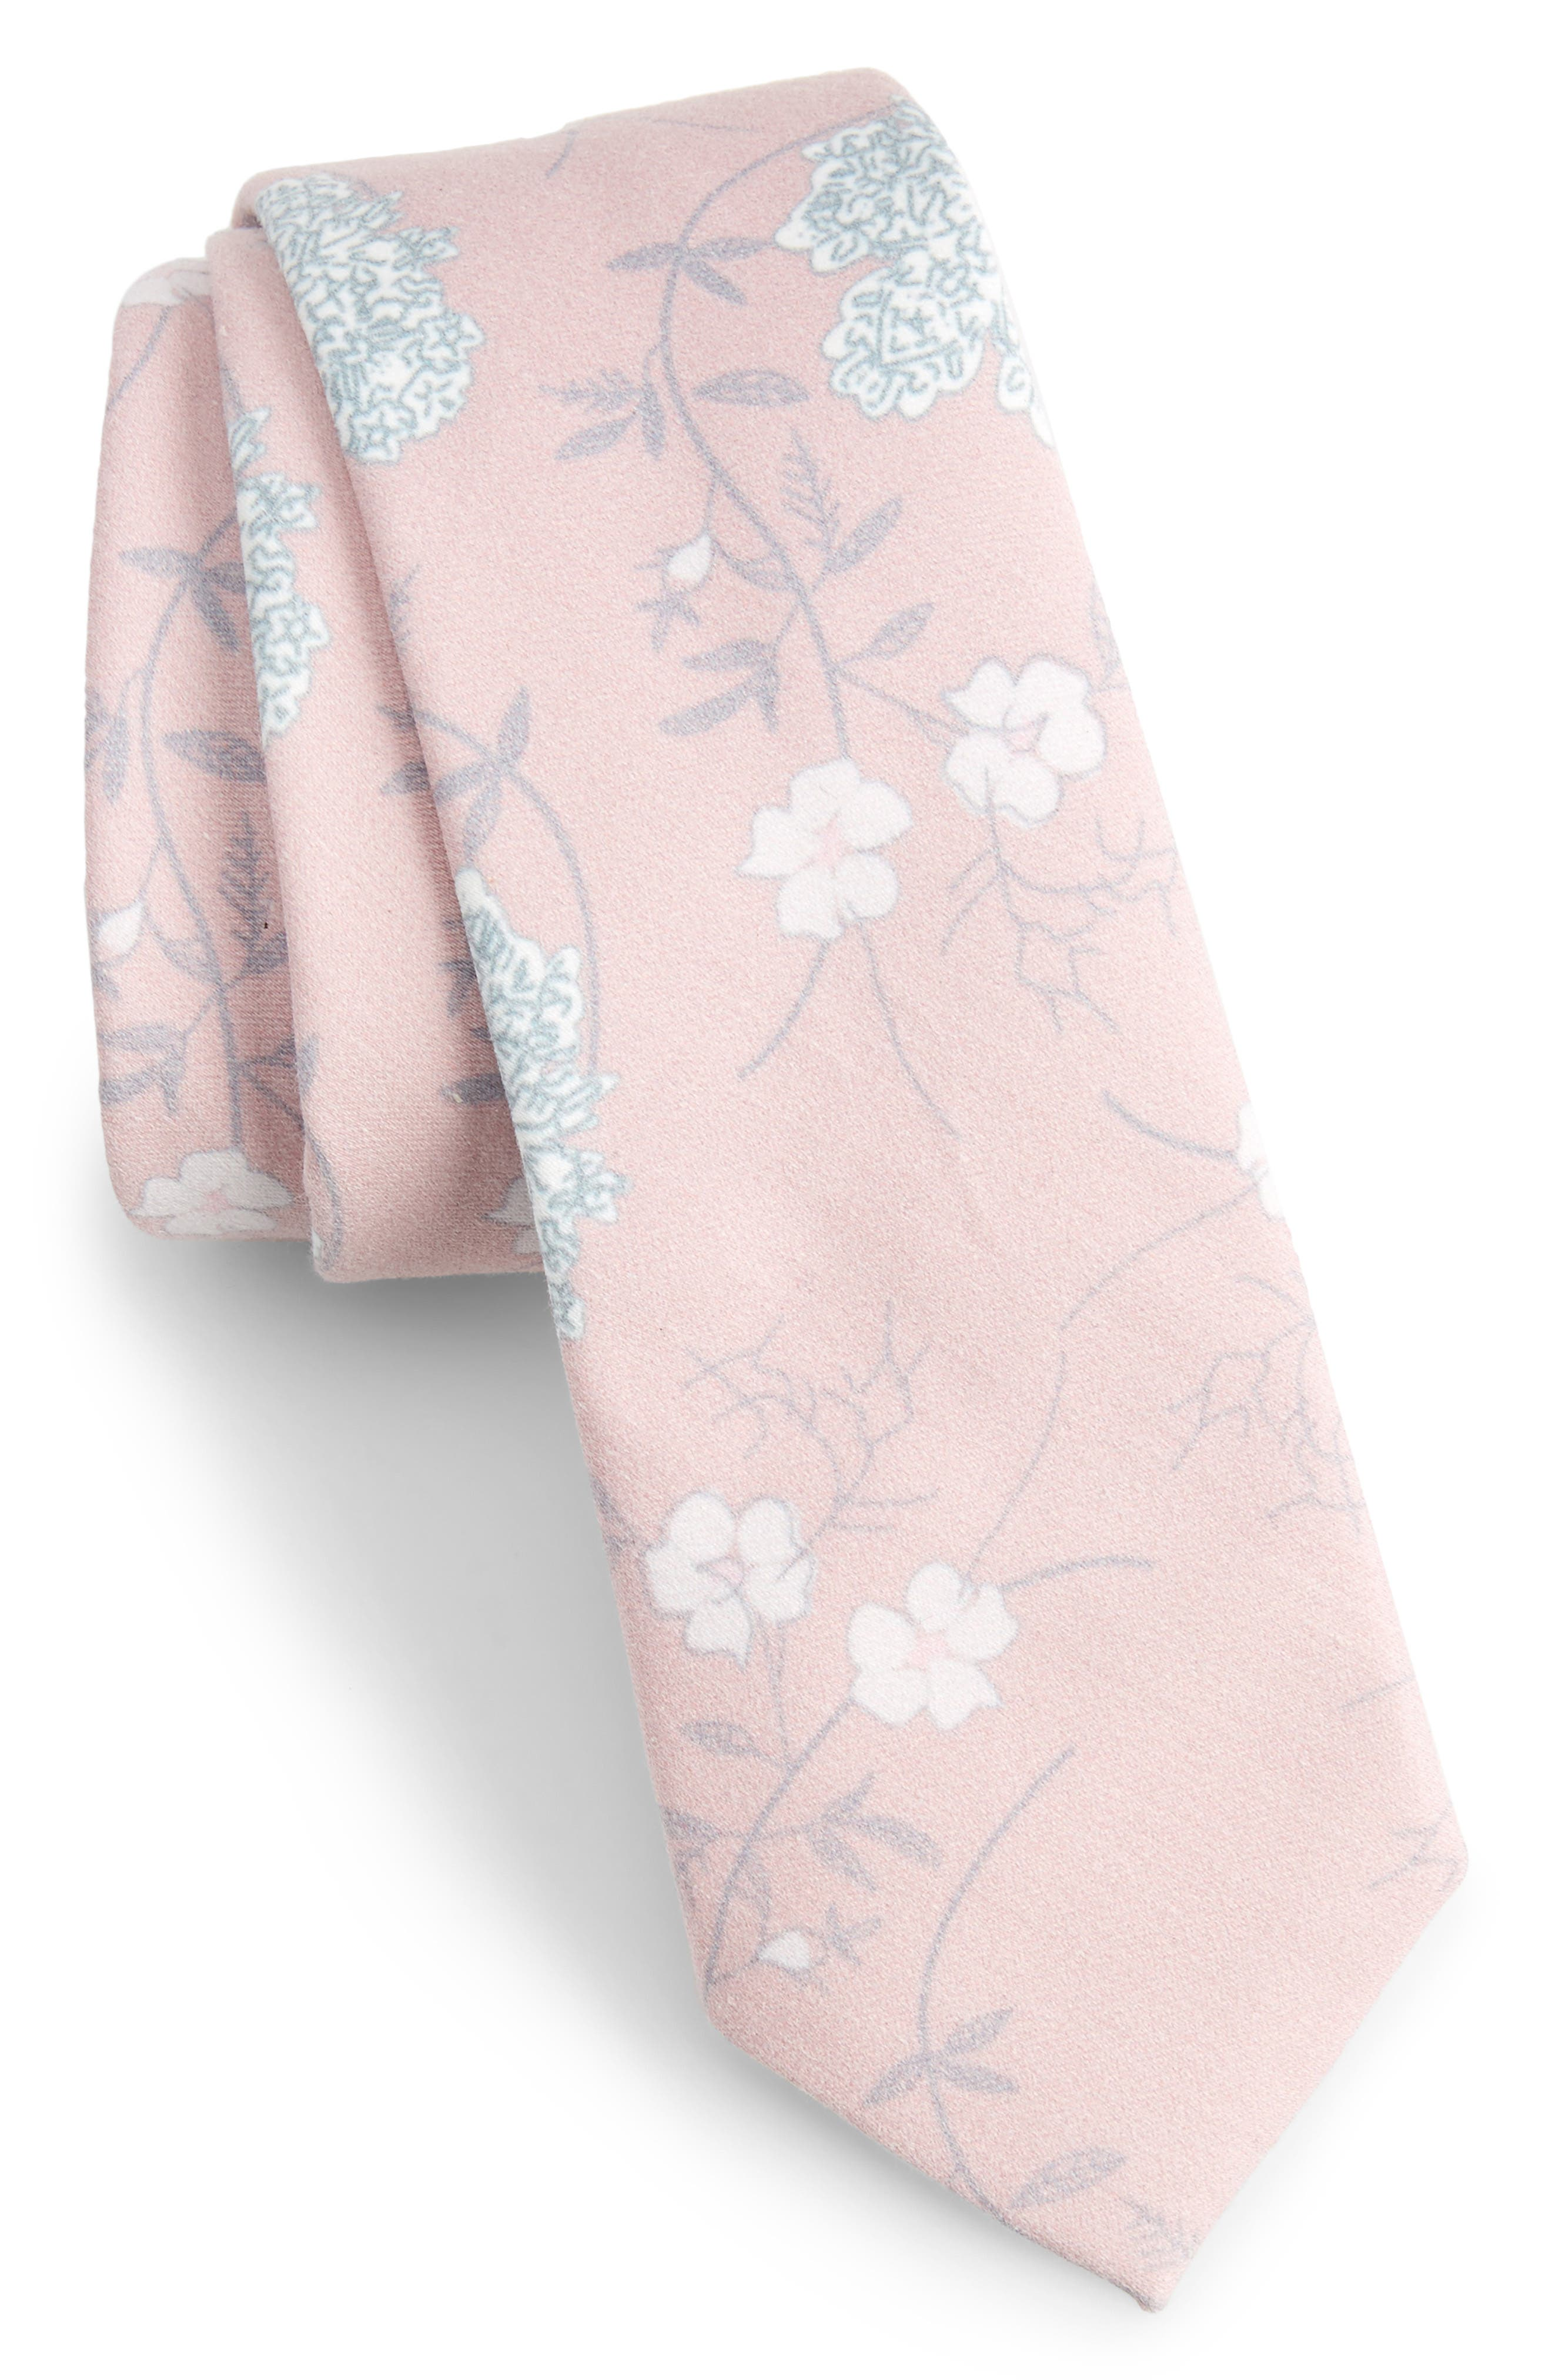 Huntwick Floral Cotton Skinny Tie,                             Main thumbnail 1, color,                             Pink